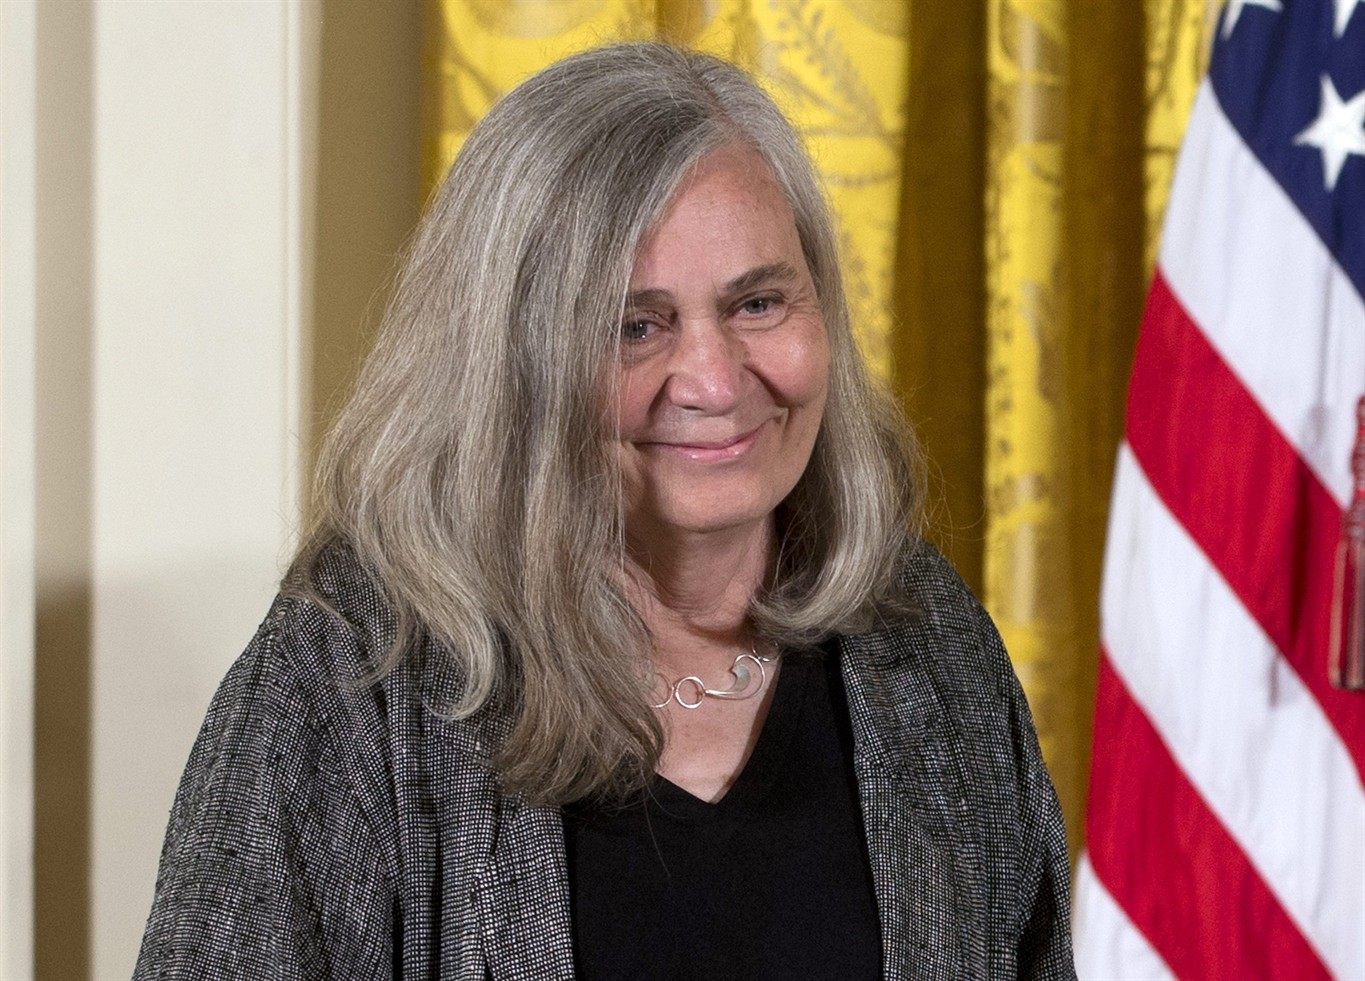 marilynne robinson dissertation It is the intent of this project to show that marilynne robinson's taggart, robert j, marilynne robinson's gilead as all theses and dissertations.